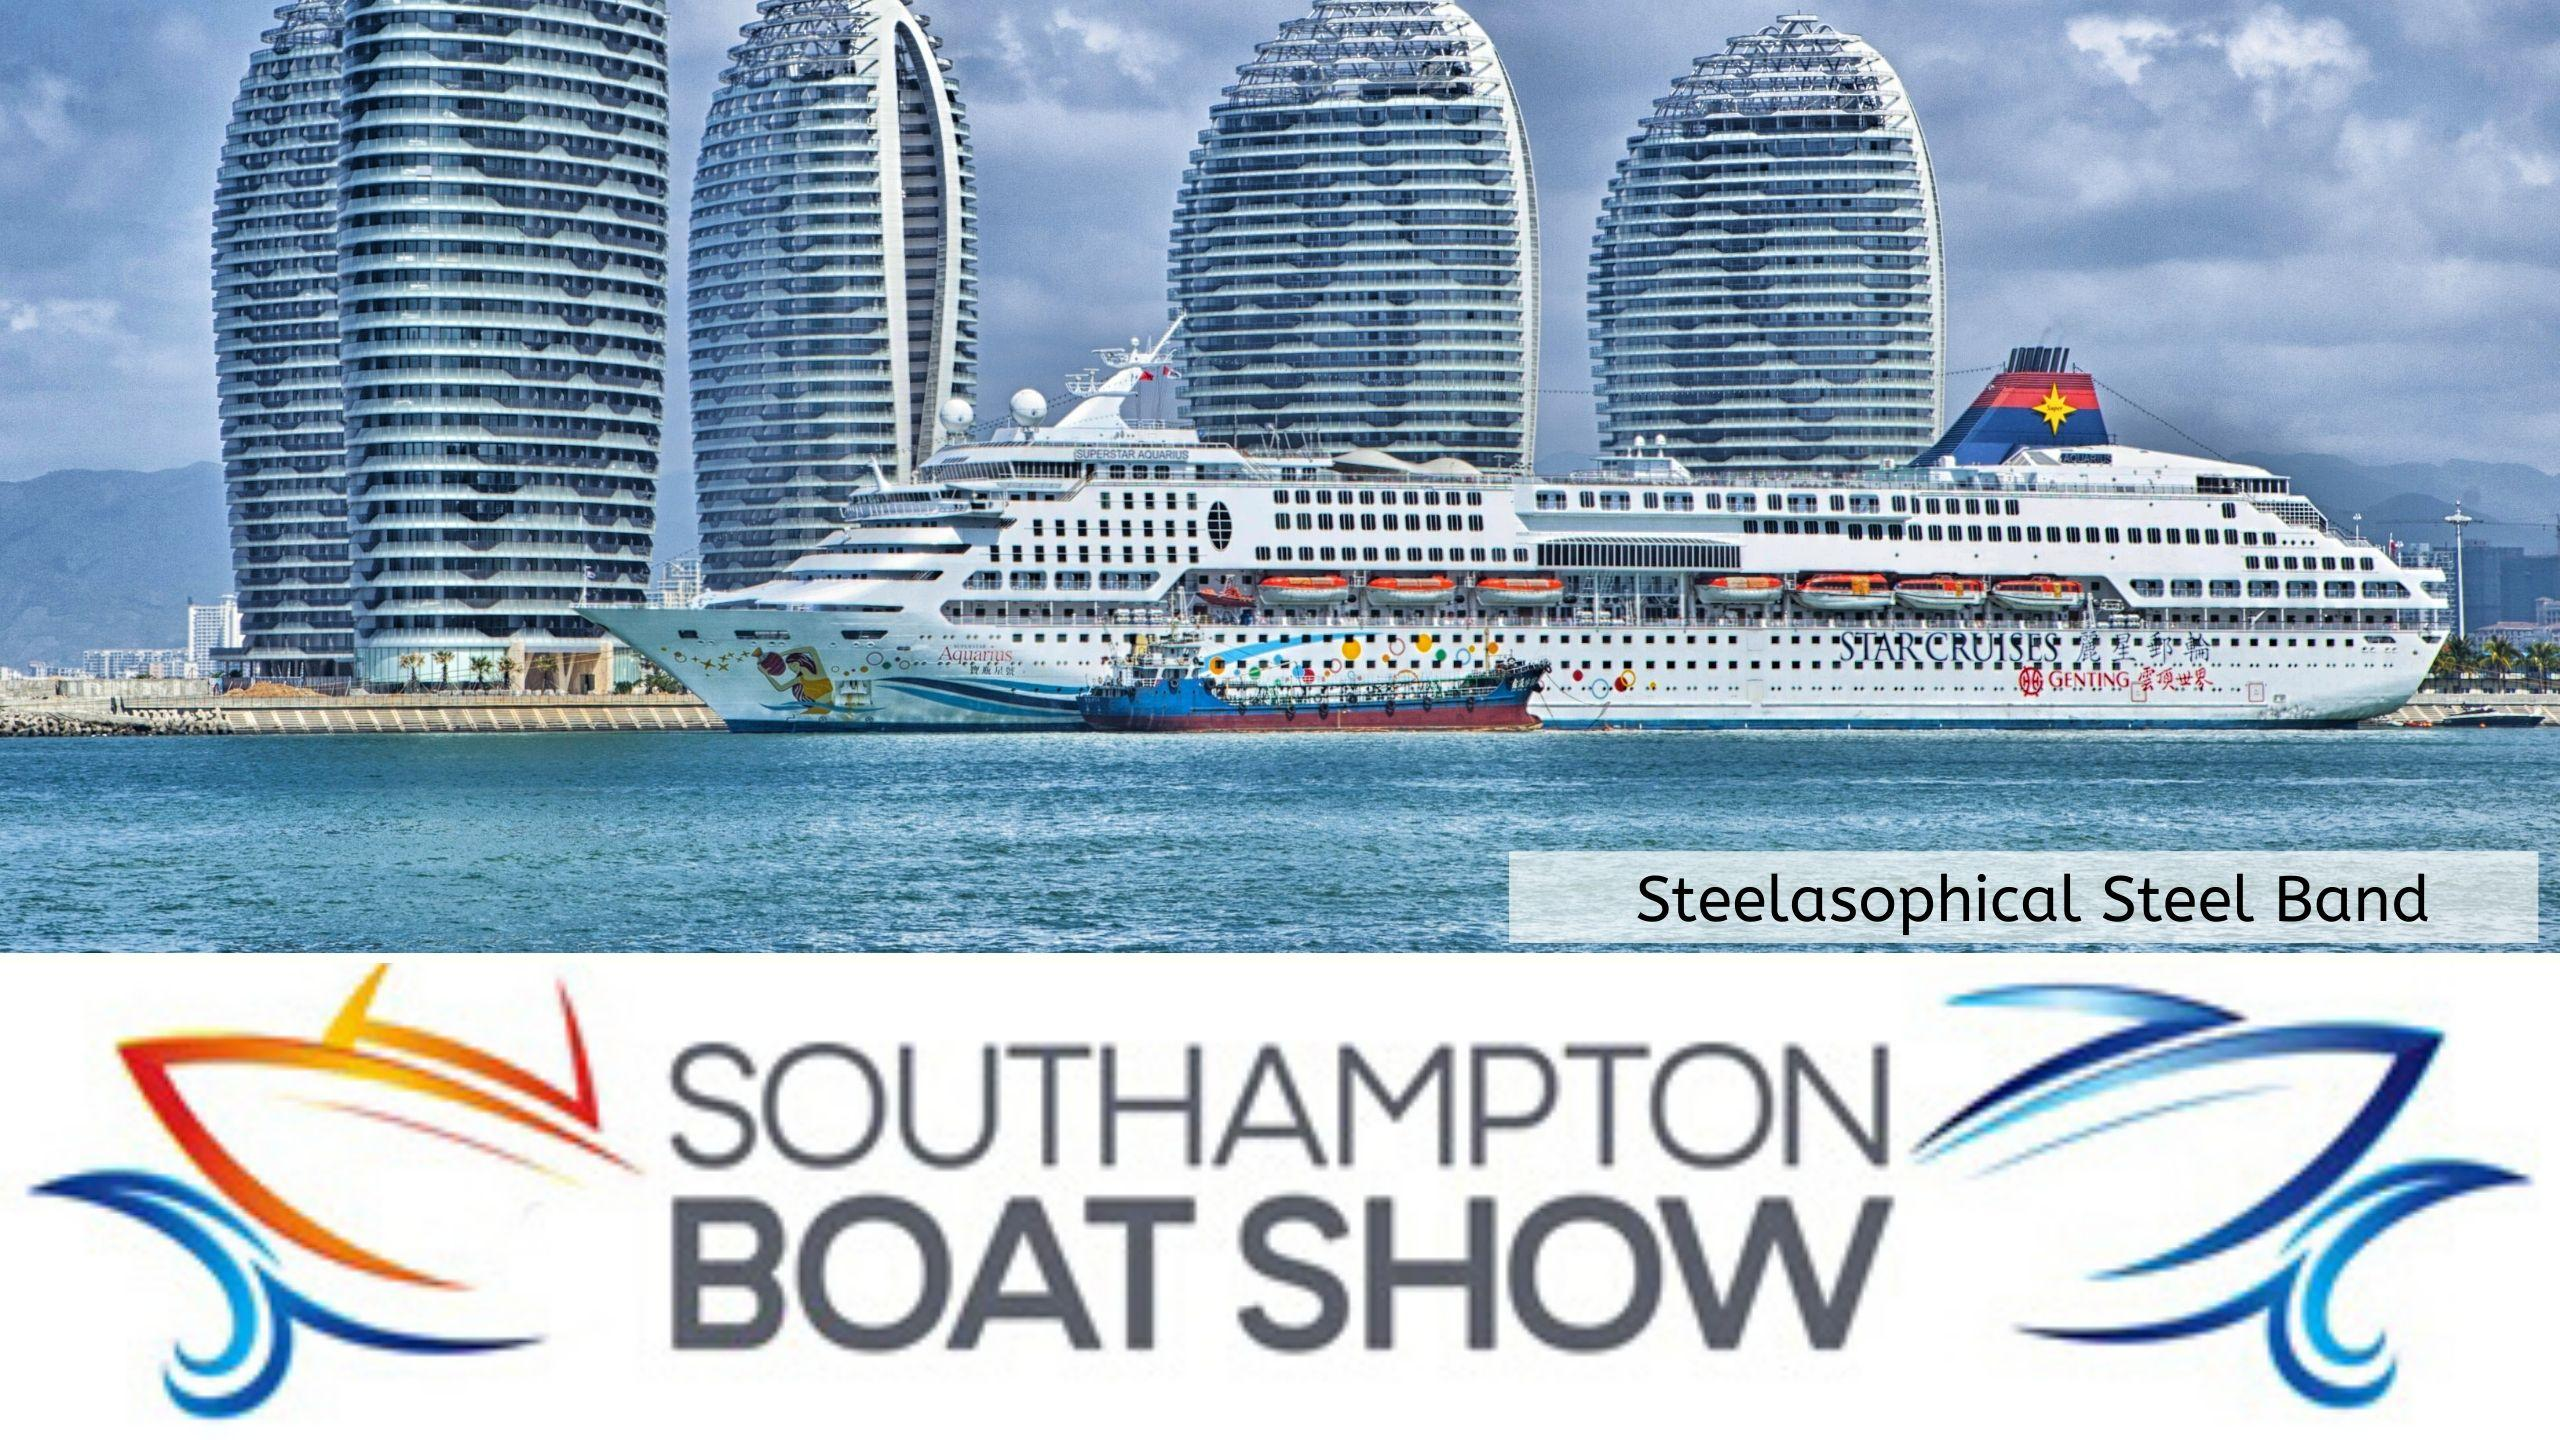 Steelasophical Steel Band Southampton Boat Show Yacht Market 001VV